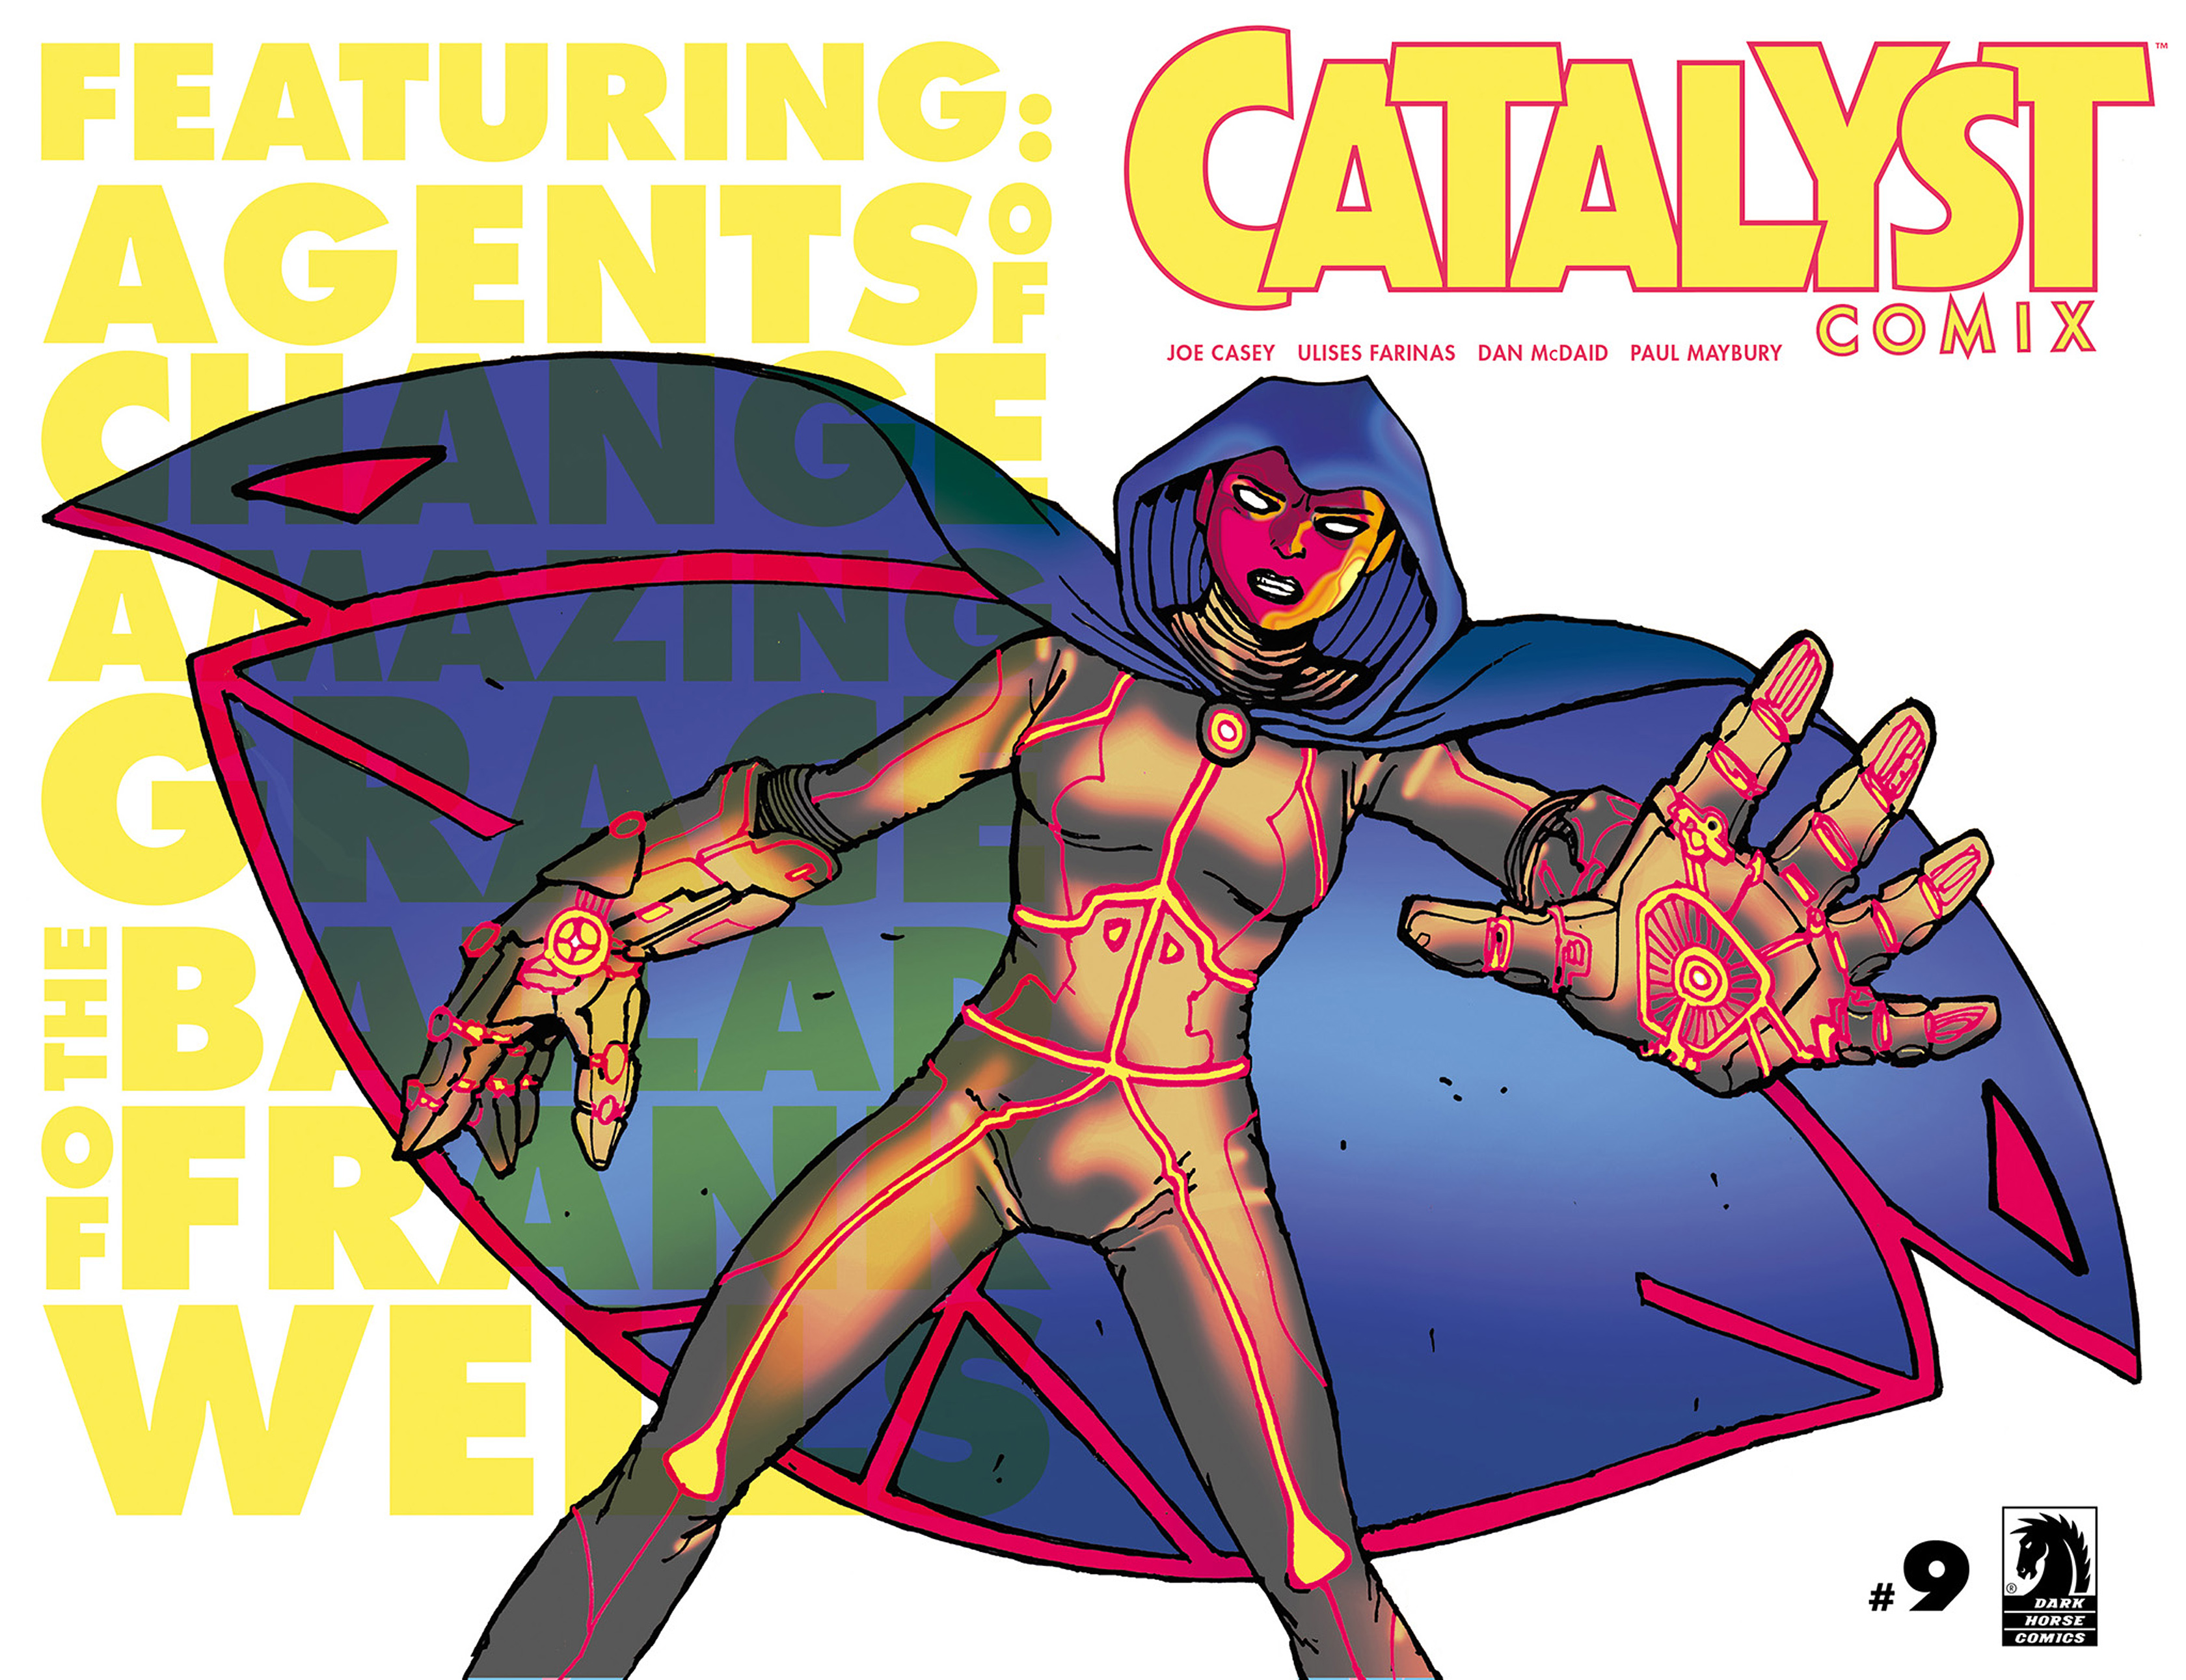 Read online Catalyst Comix comic -  Issue #9 - 2